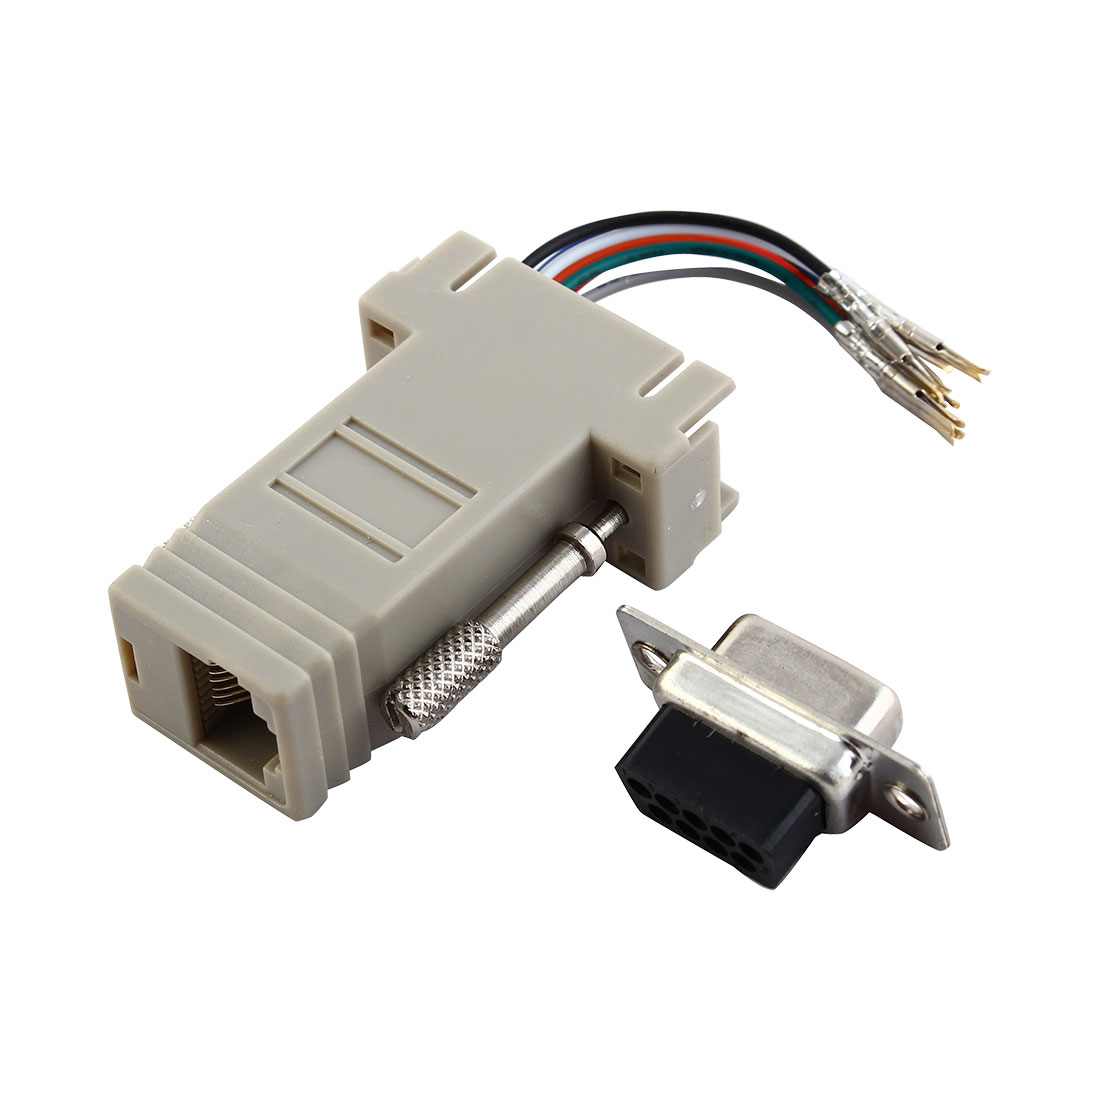 Modular Port DB9 Female to RJ45 8P8C Adapter Converter